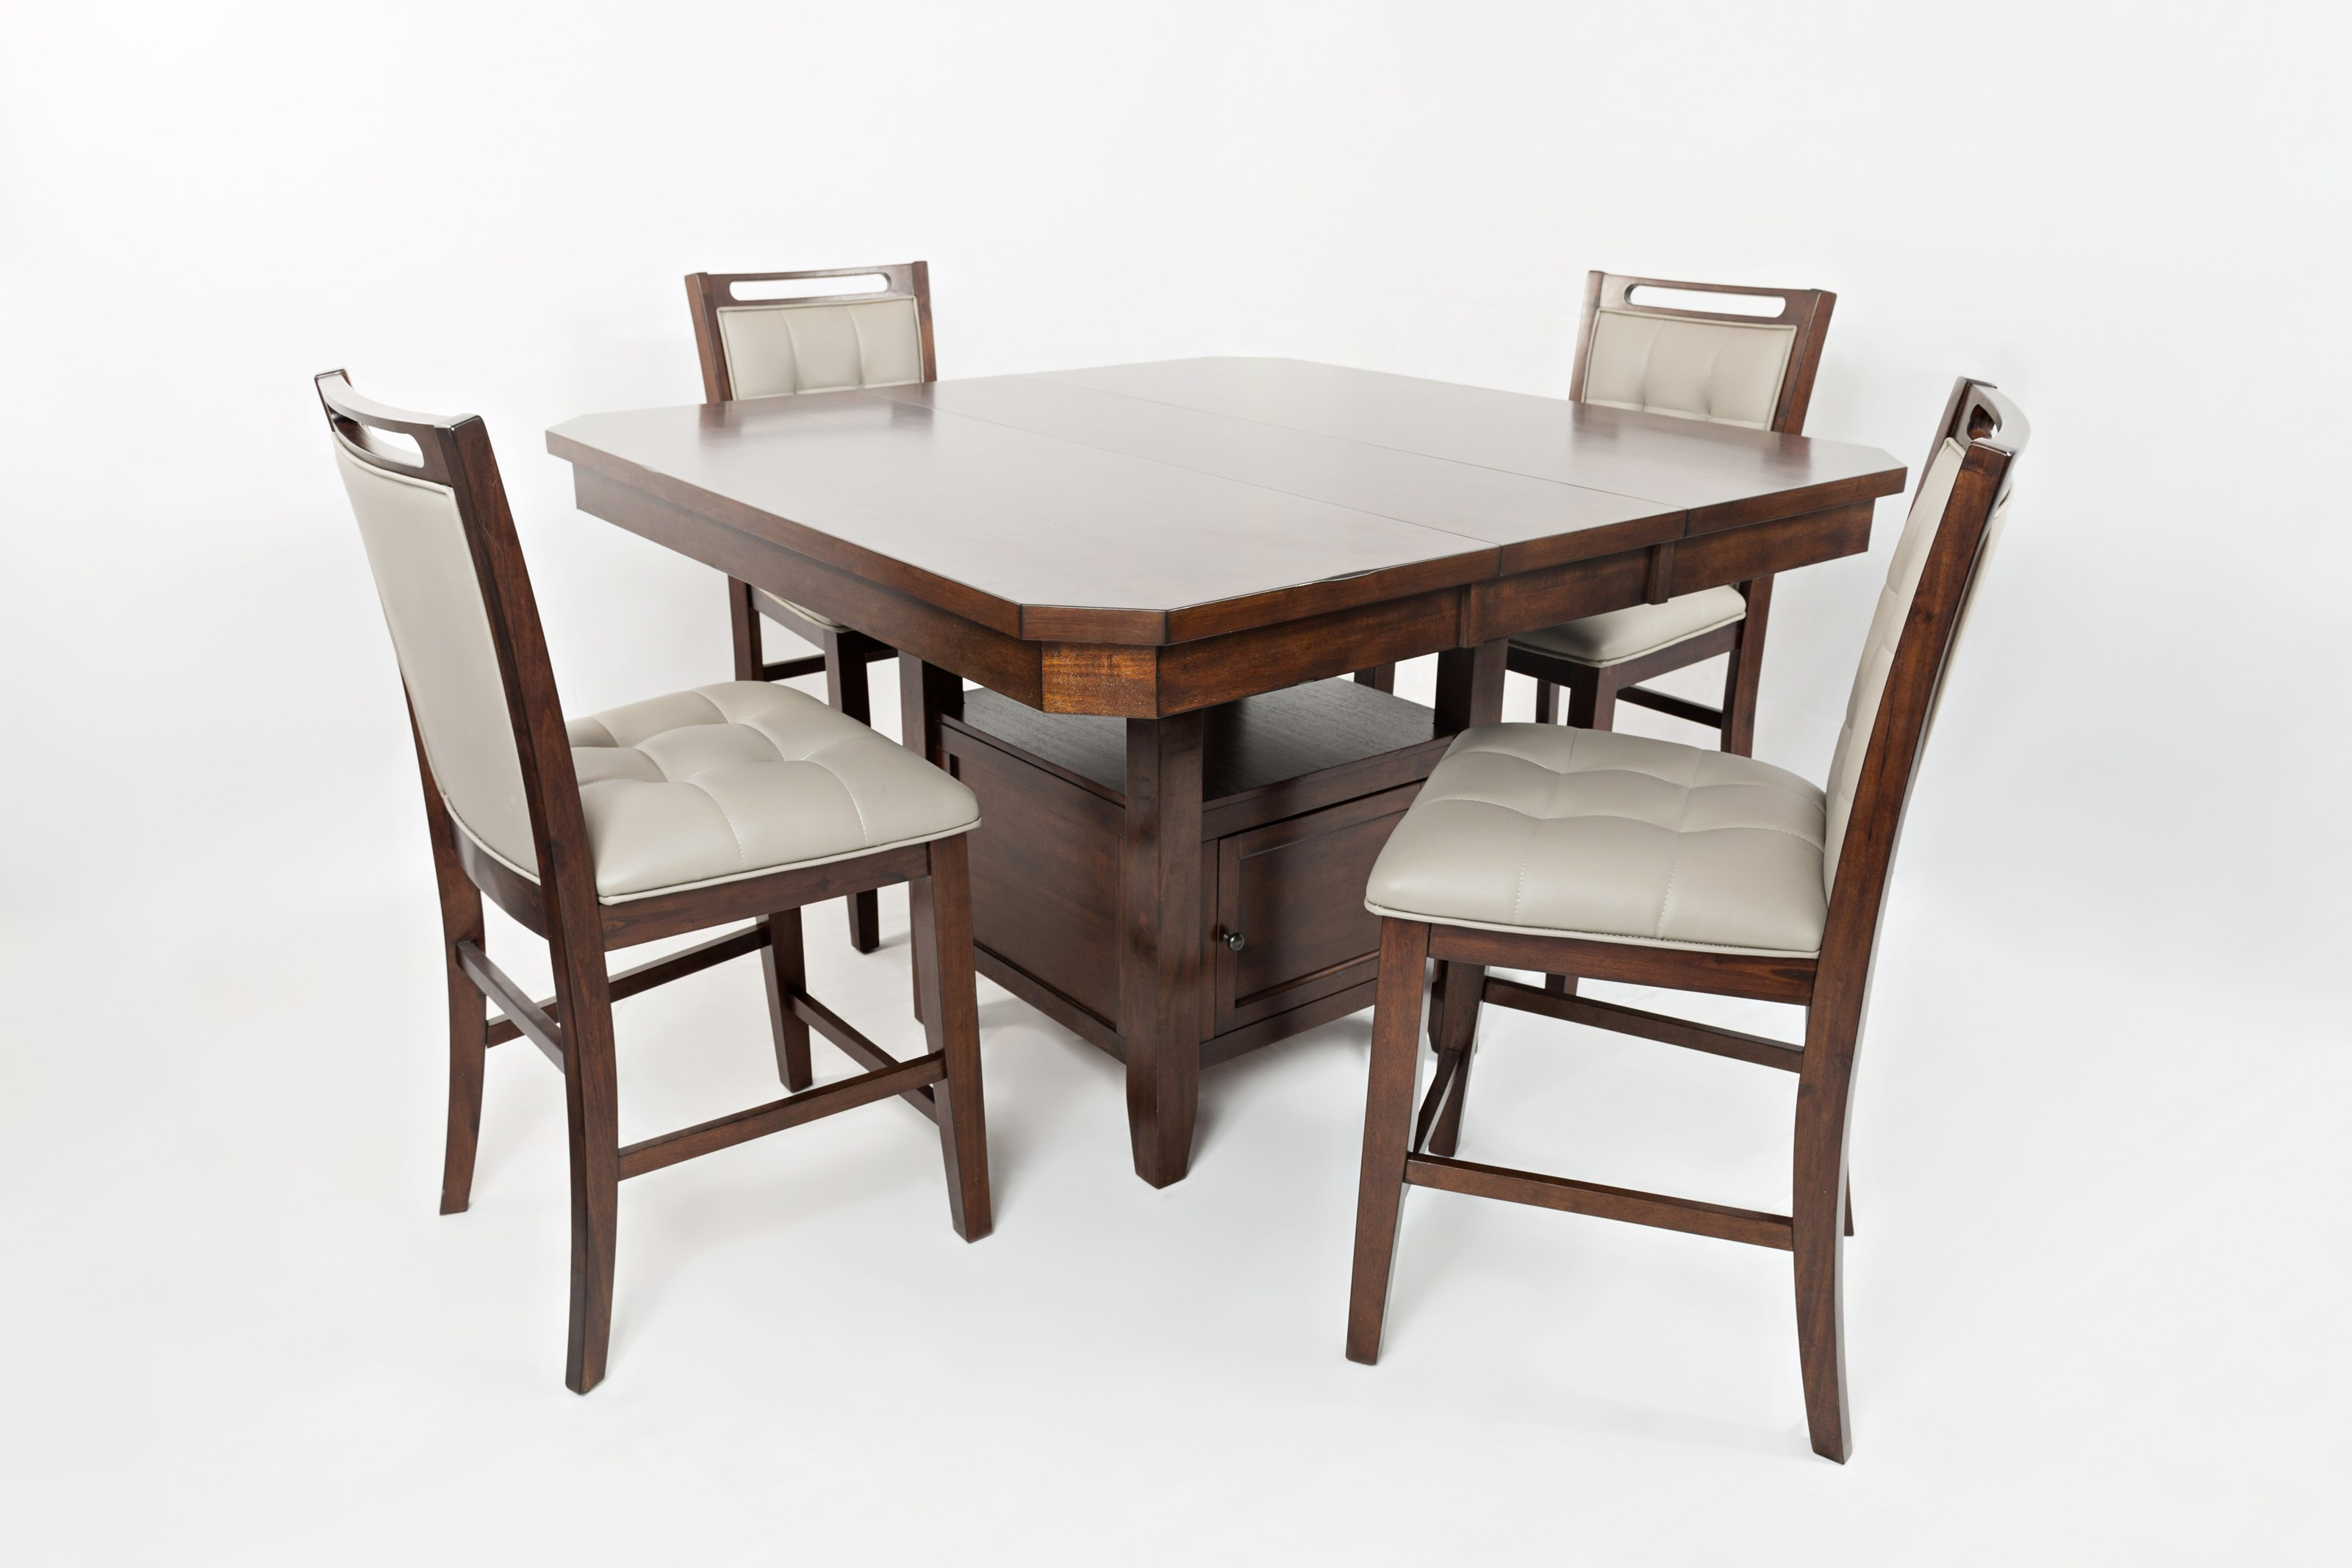 Jofran Manchester Counter Height Dining Set 4 People  : products2Fjofran2Fcolor2Fmanchester 3524365071672 54tbkt2B4xbs385kd b3 from www.zaksfurniture.com size 3200 x 2134 jpeg 419kB